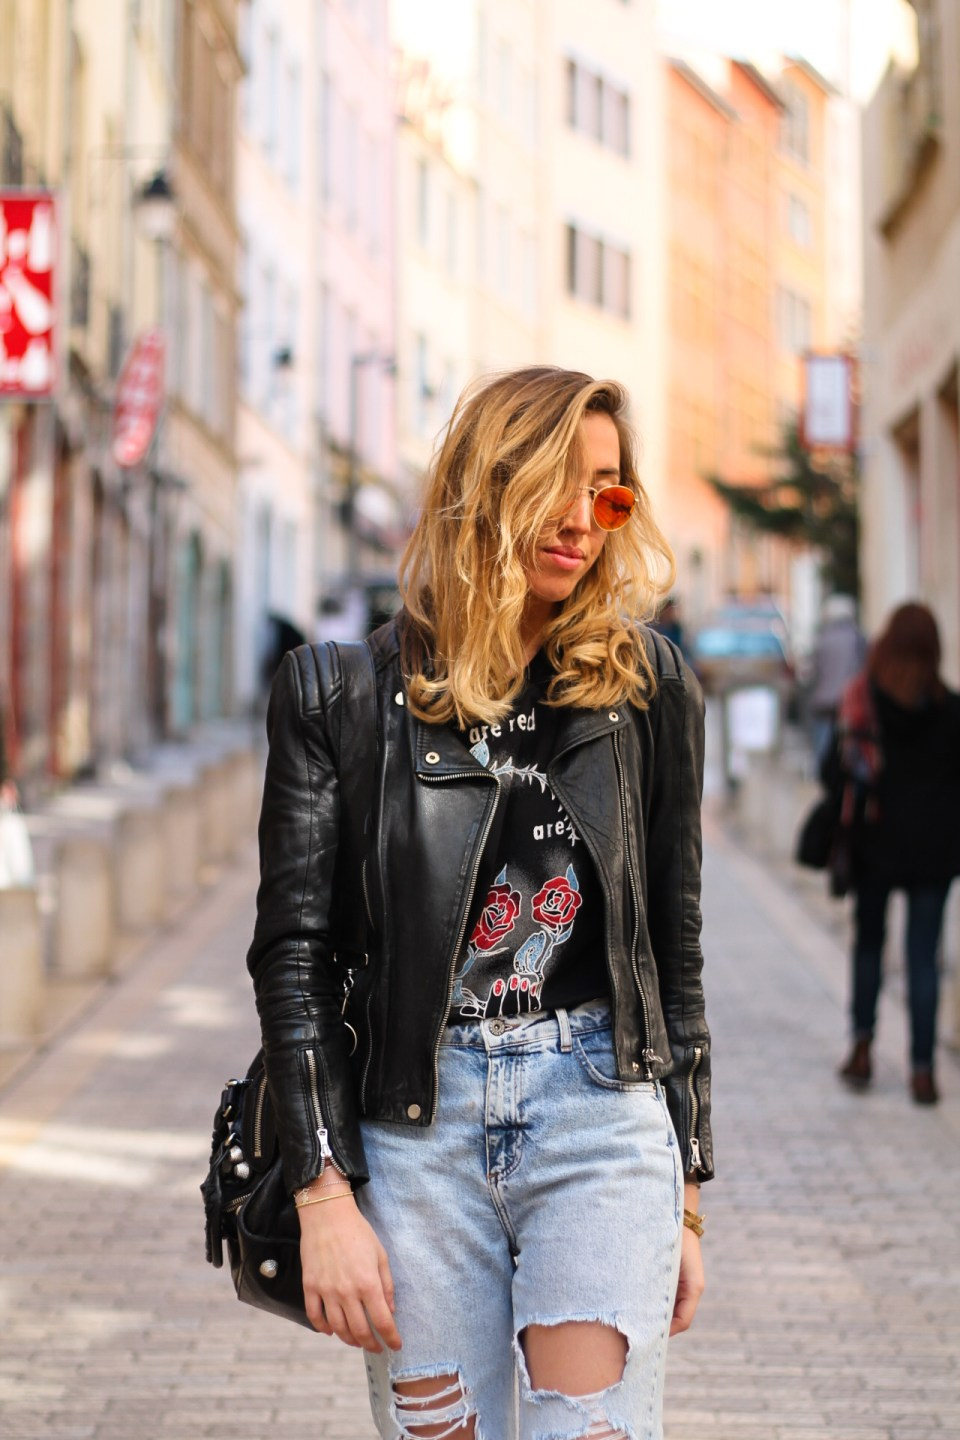 blog-mode-lyon-diesel-rock-look-15